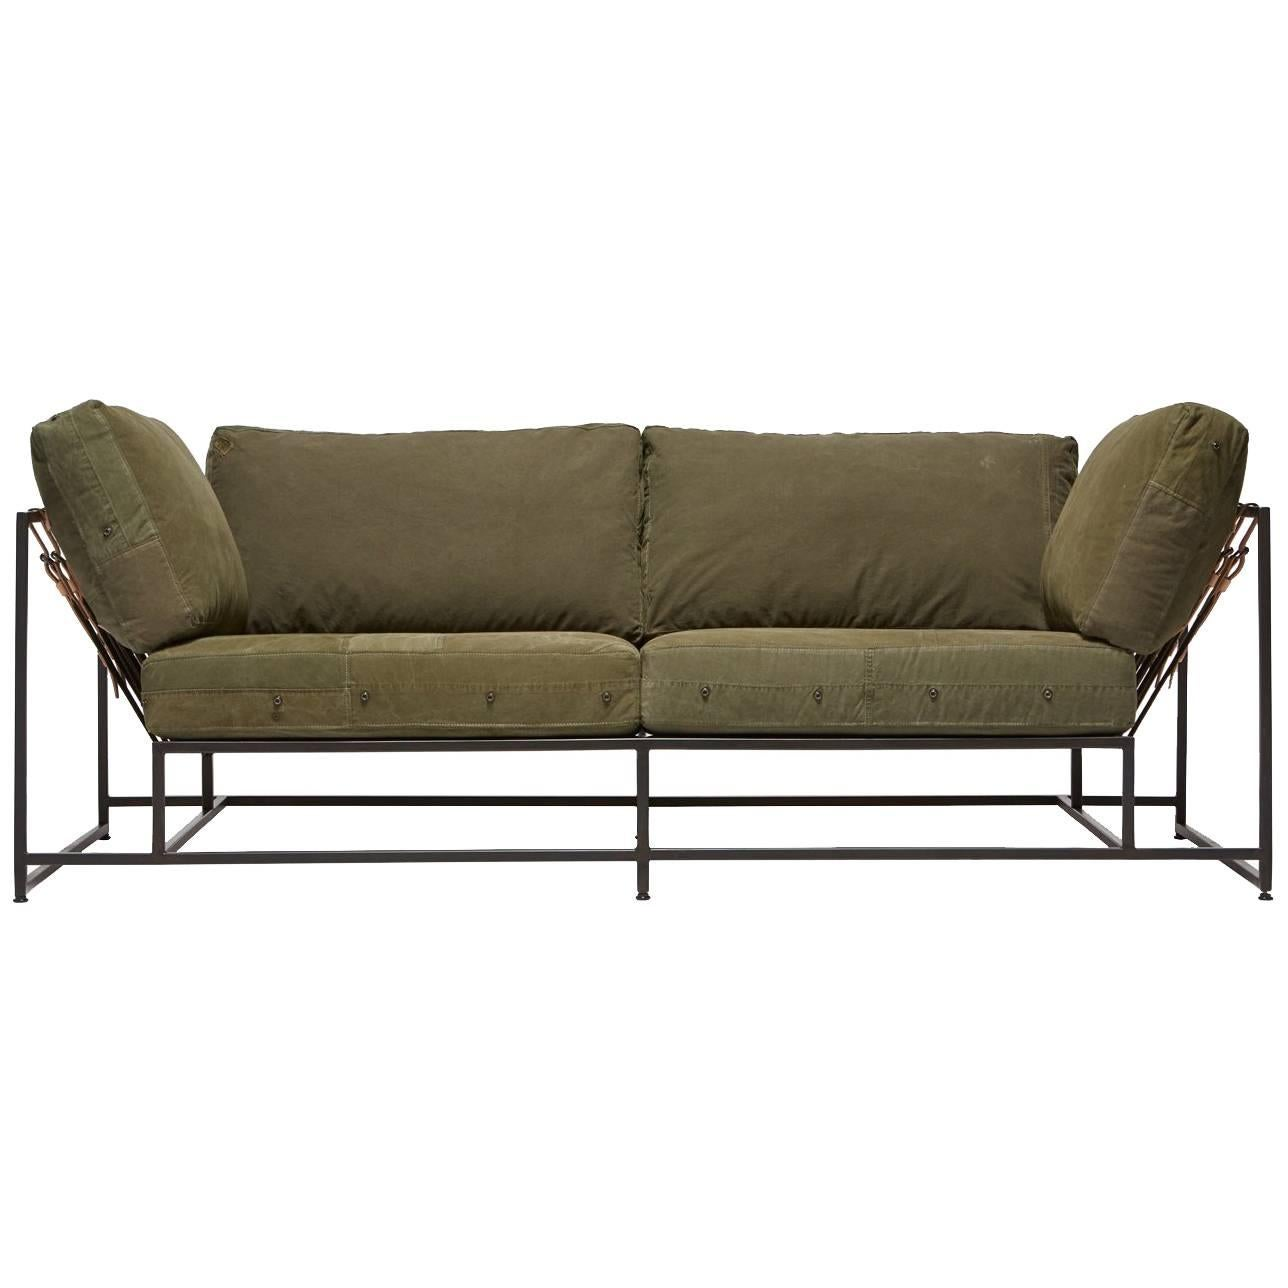 Vintage Military Canvas and Blackened Steel Two Seat Sofa V1